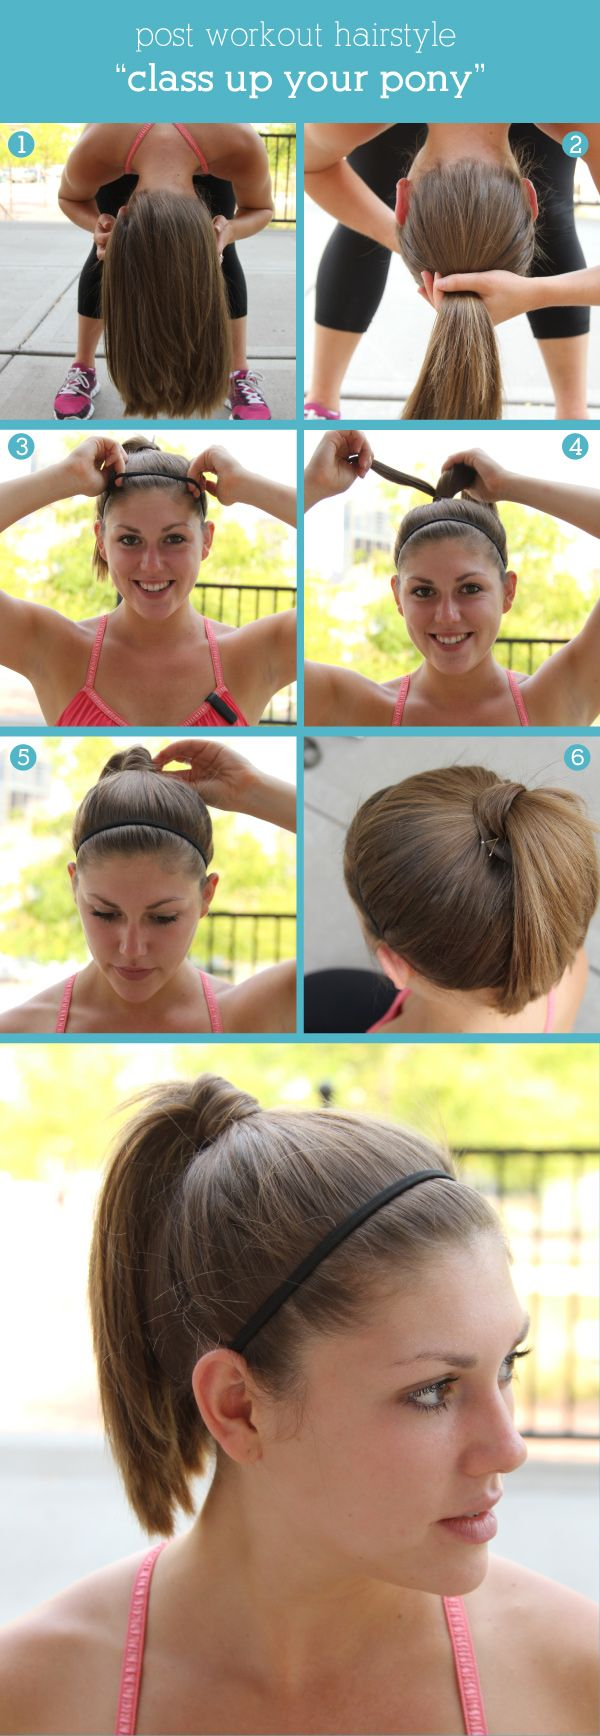 Classic high pony hurr pinterest post workout hair workout